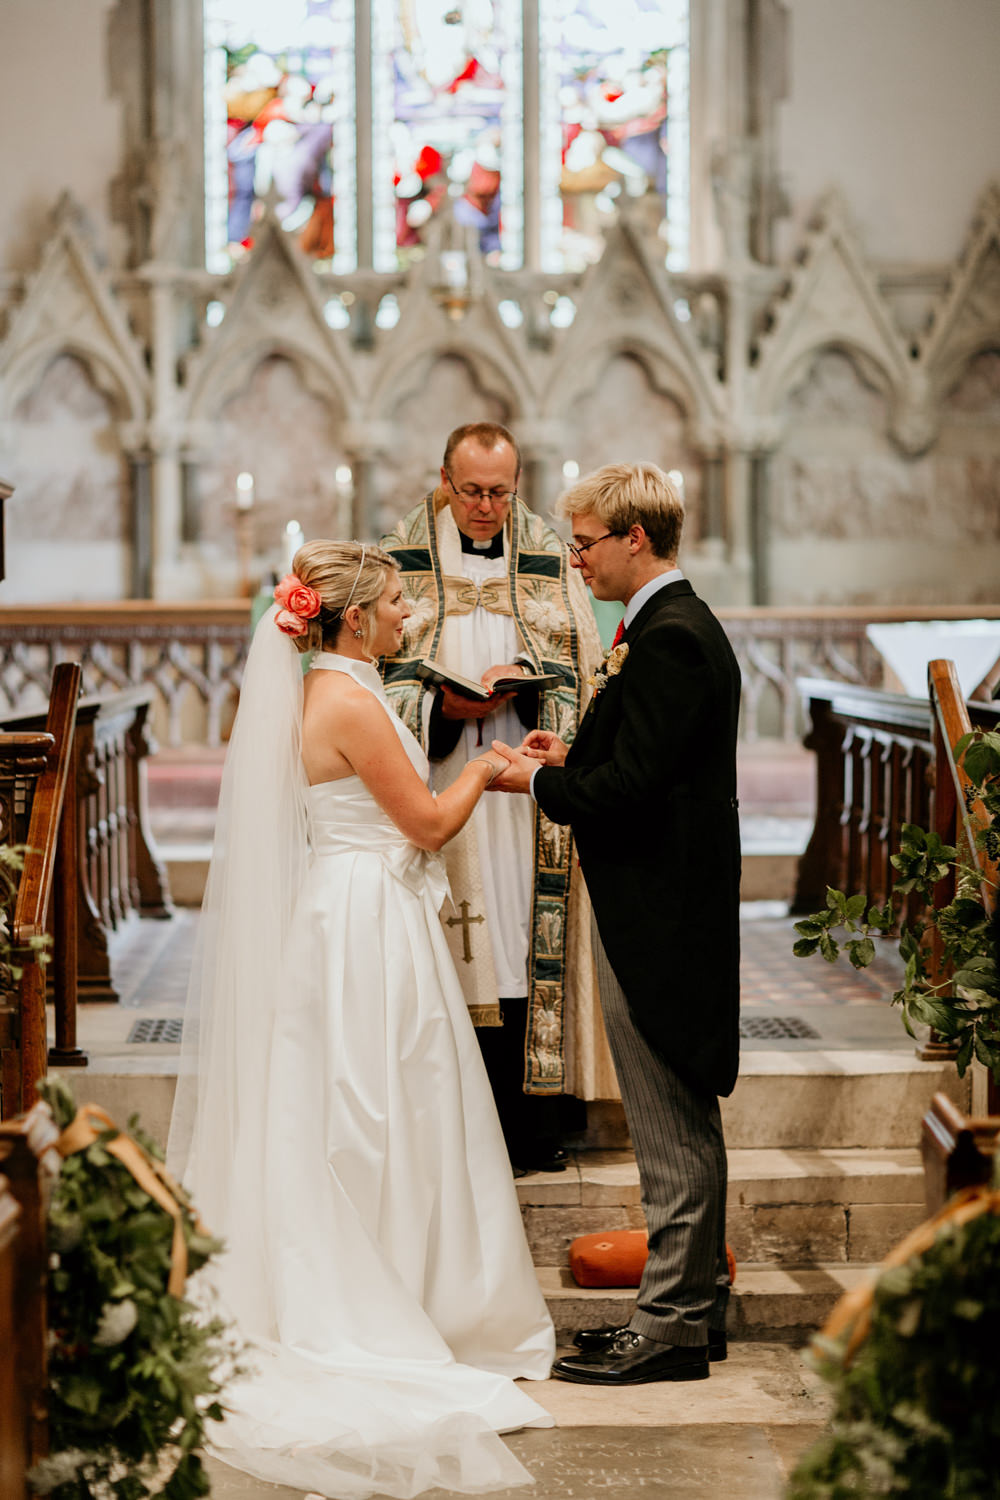 church wedding ceremony vows with bride wearing a Jesus Peiro wedding dress